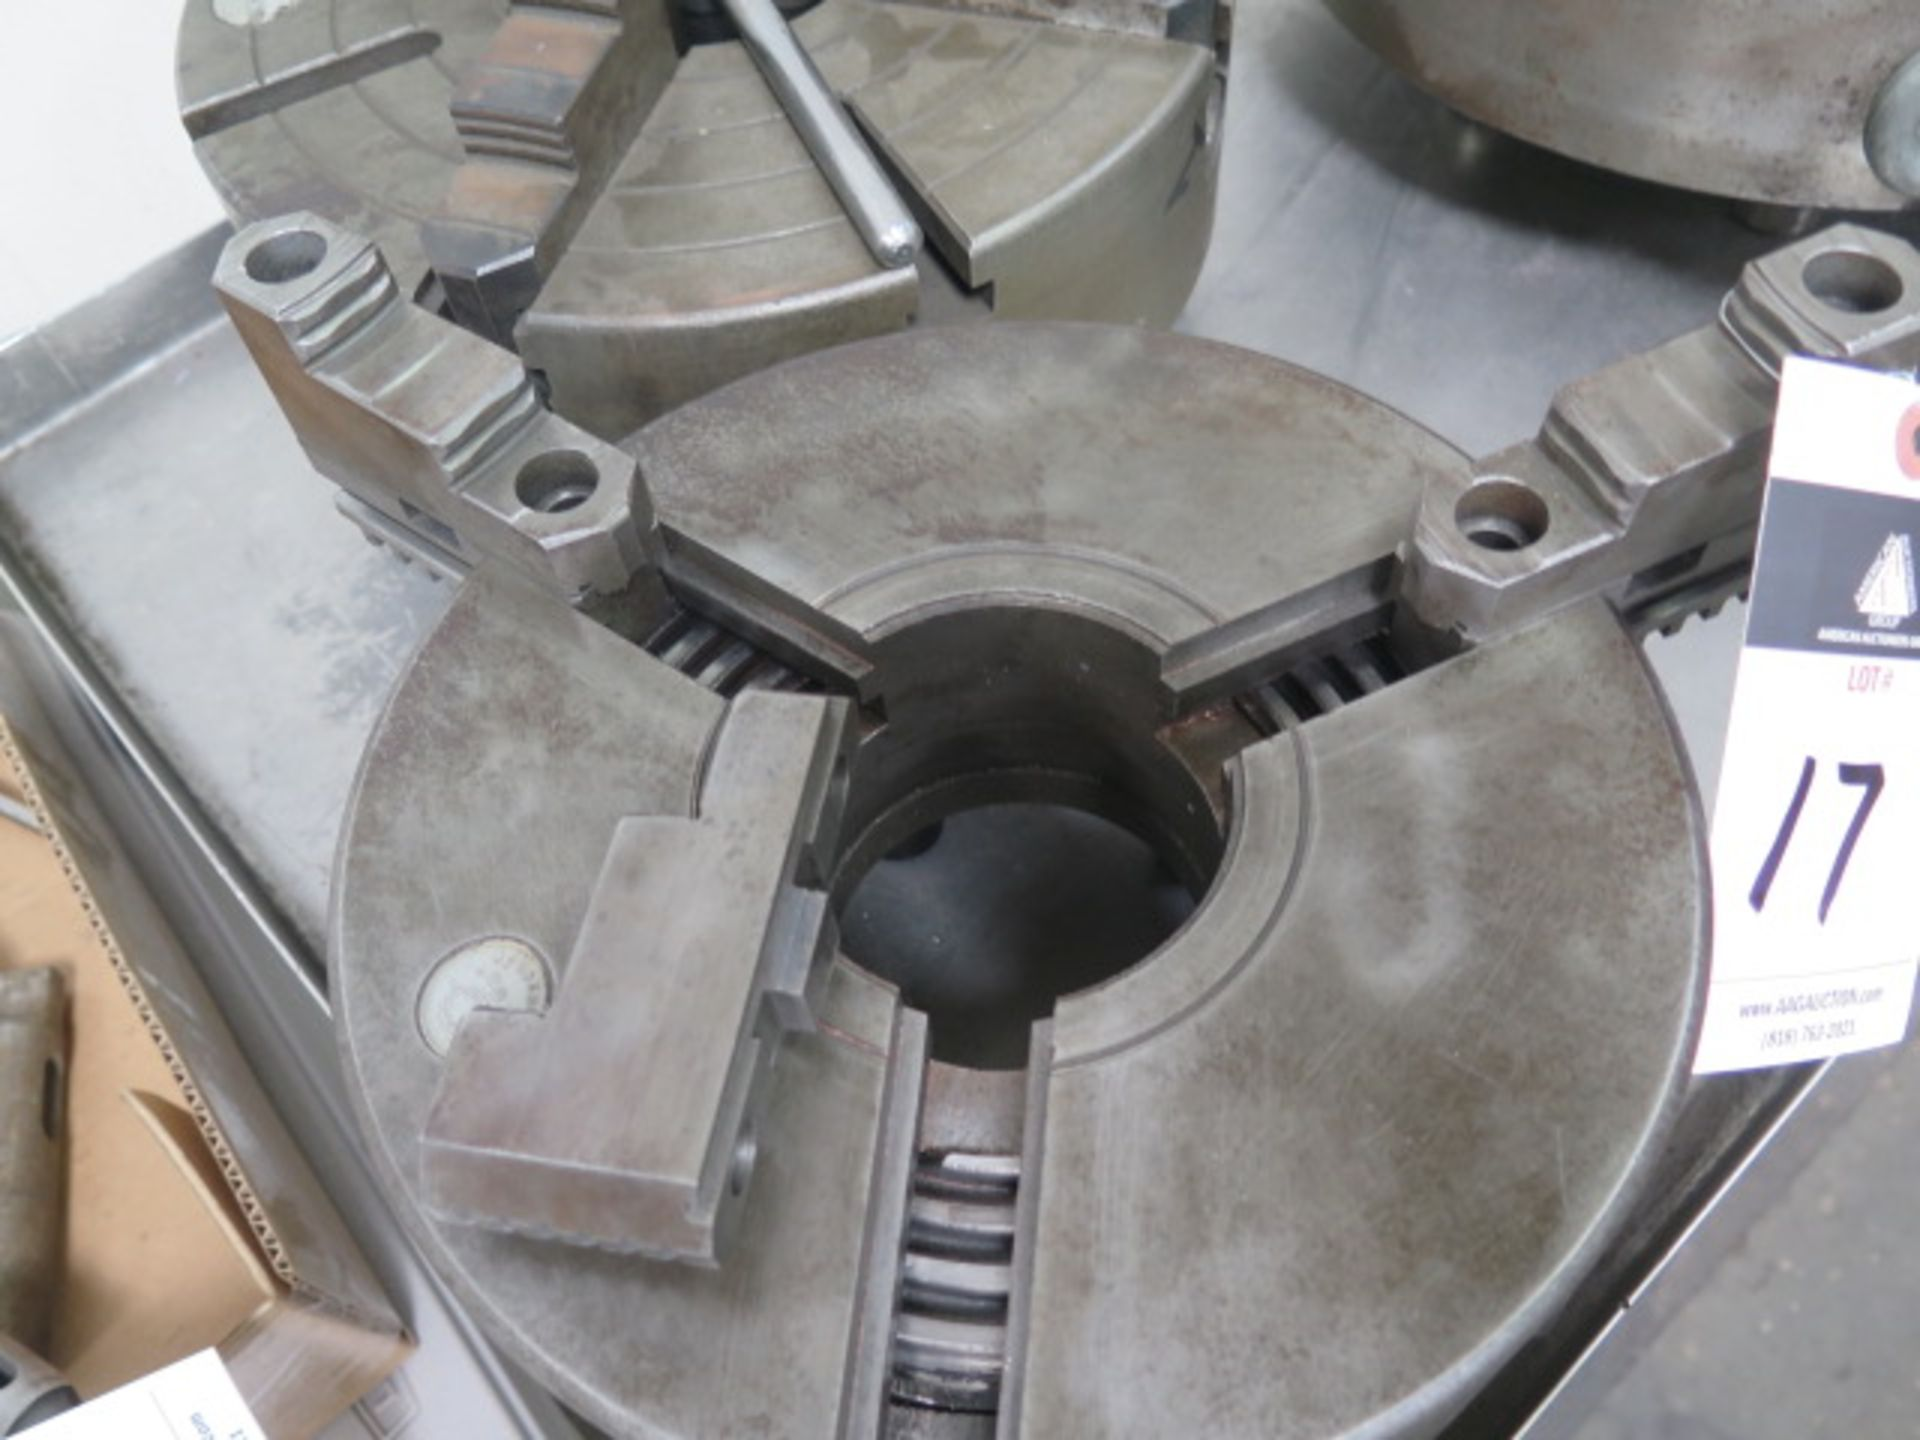 """Lotto 17 - 12 1/2"""" 4-Jaw Chuck and 10"""" 3-Jaw Chuck(NEEDS BASE GEAR)"""